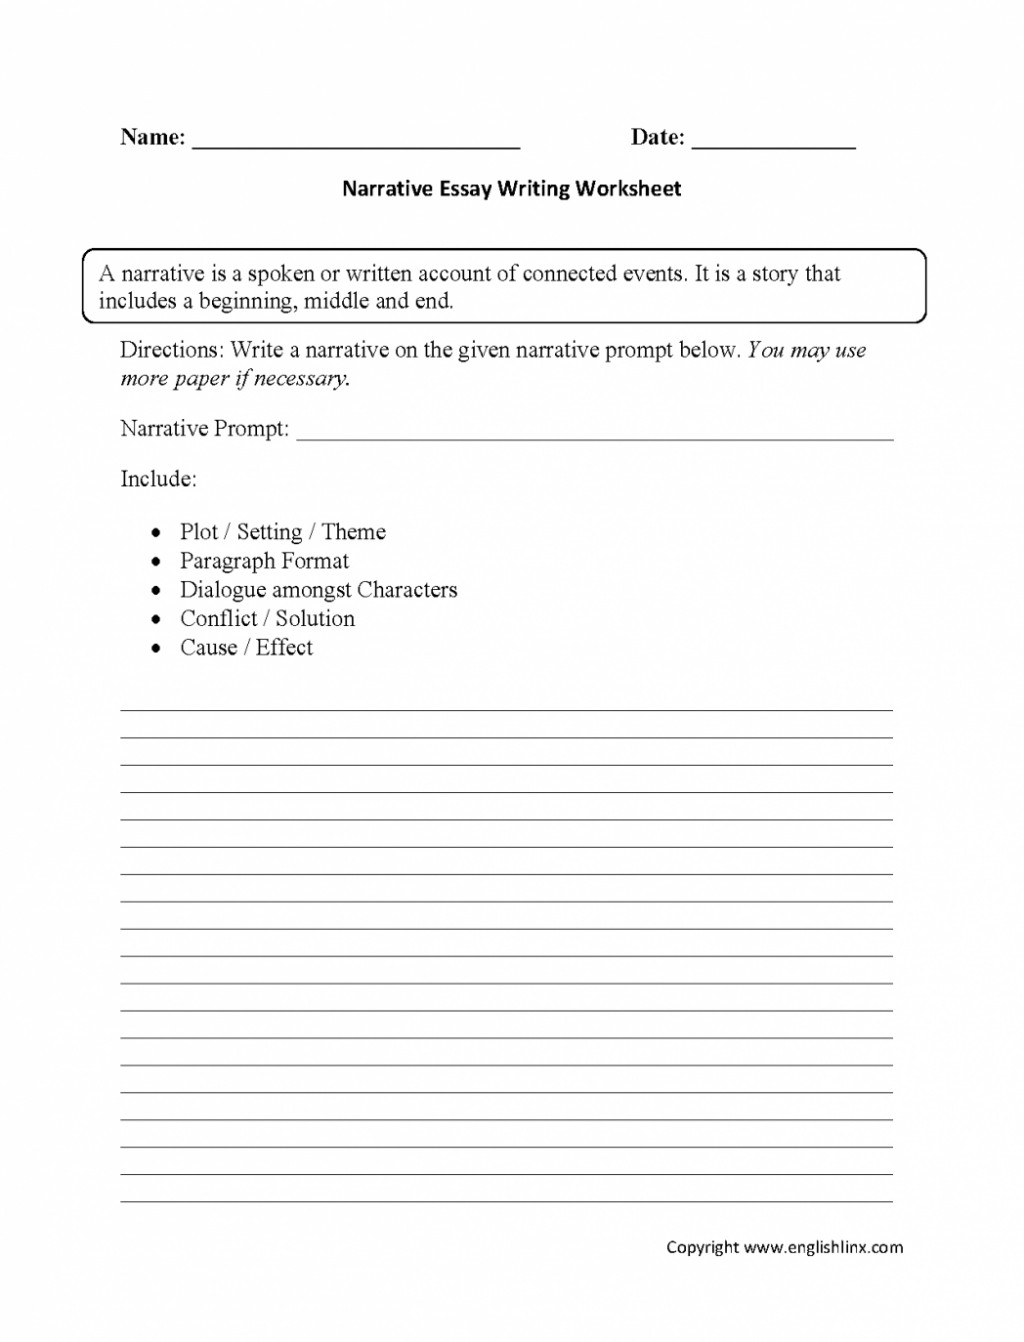 005 Essay Example Map Graphic Organizer Writing Worksheets Organizers For Within College Surprising Application Argumentative Large